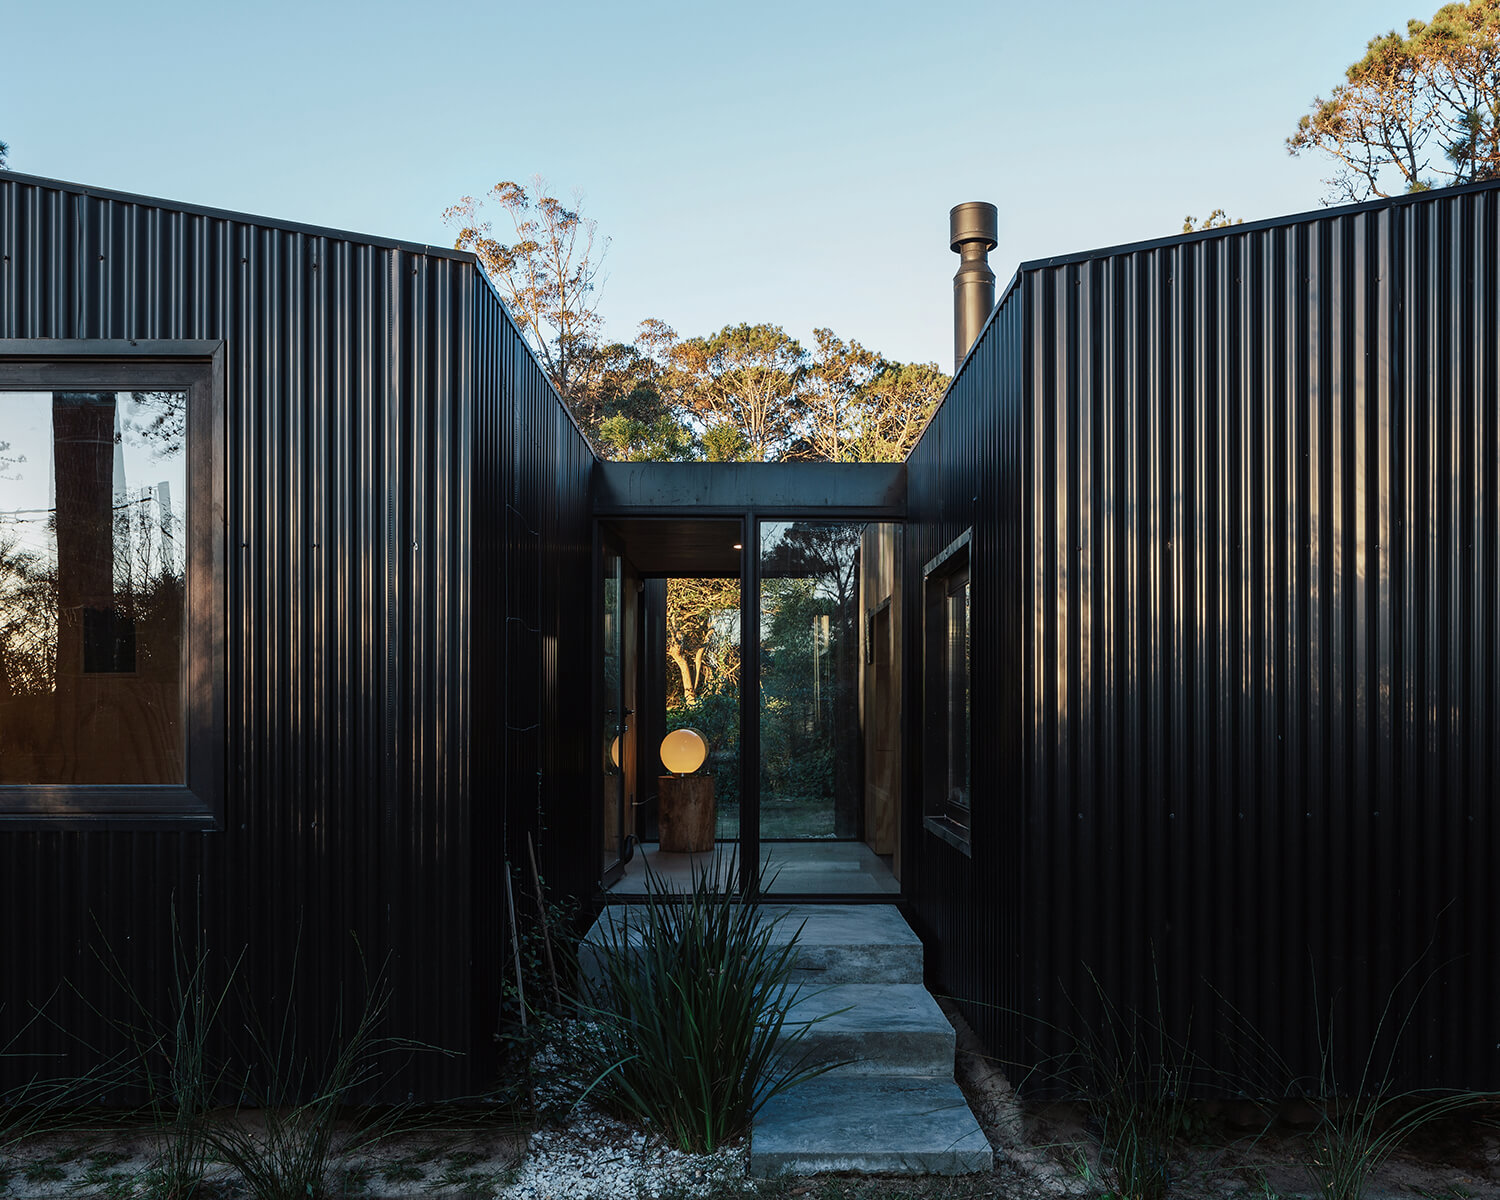 Exterior view of the cabin, showing the glazed walkway and corrugated sheet metal facade